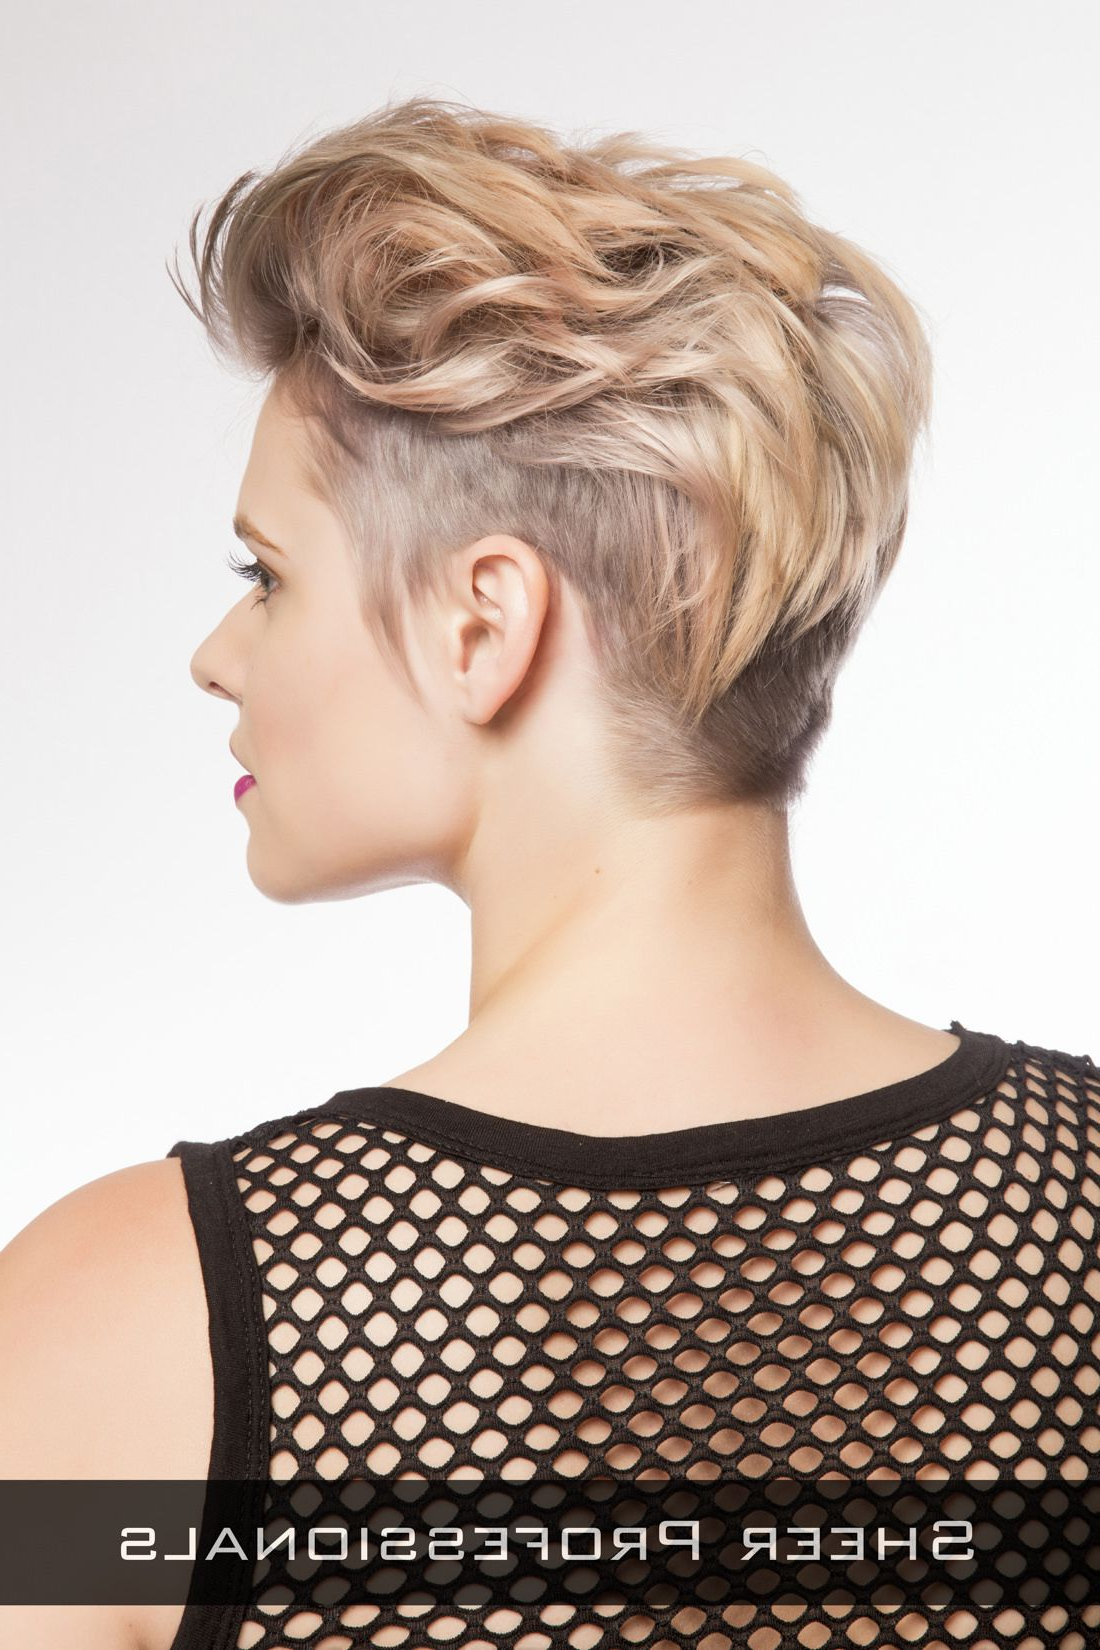 33 Flattering Short Hairstyles For Round Faces In 2018   New Throughout Edgy Short Hairstyles For Round Faces (View 13 of 25)